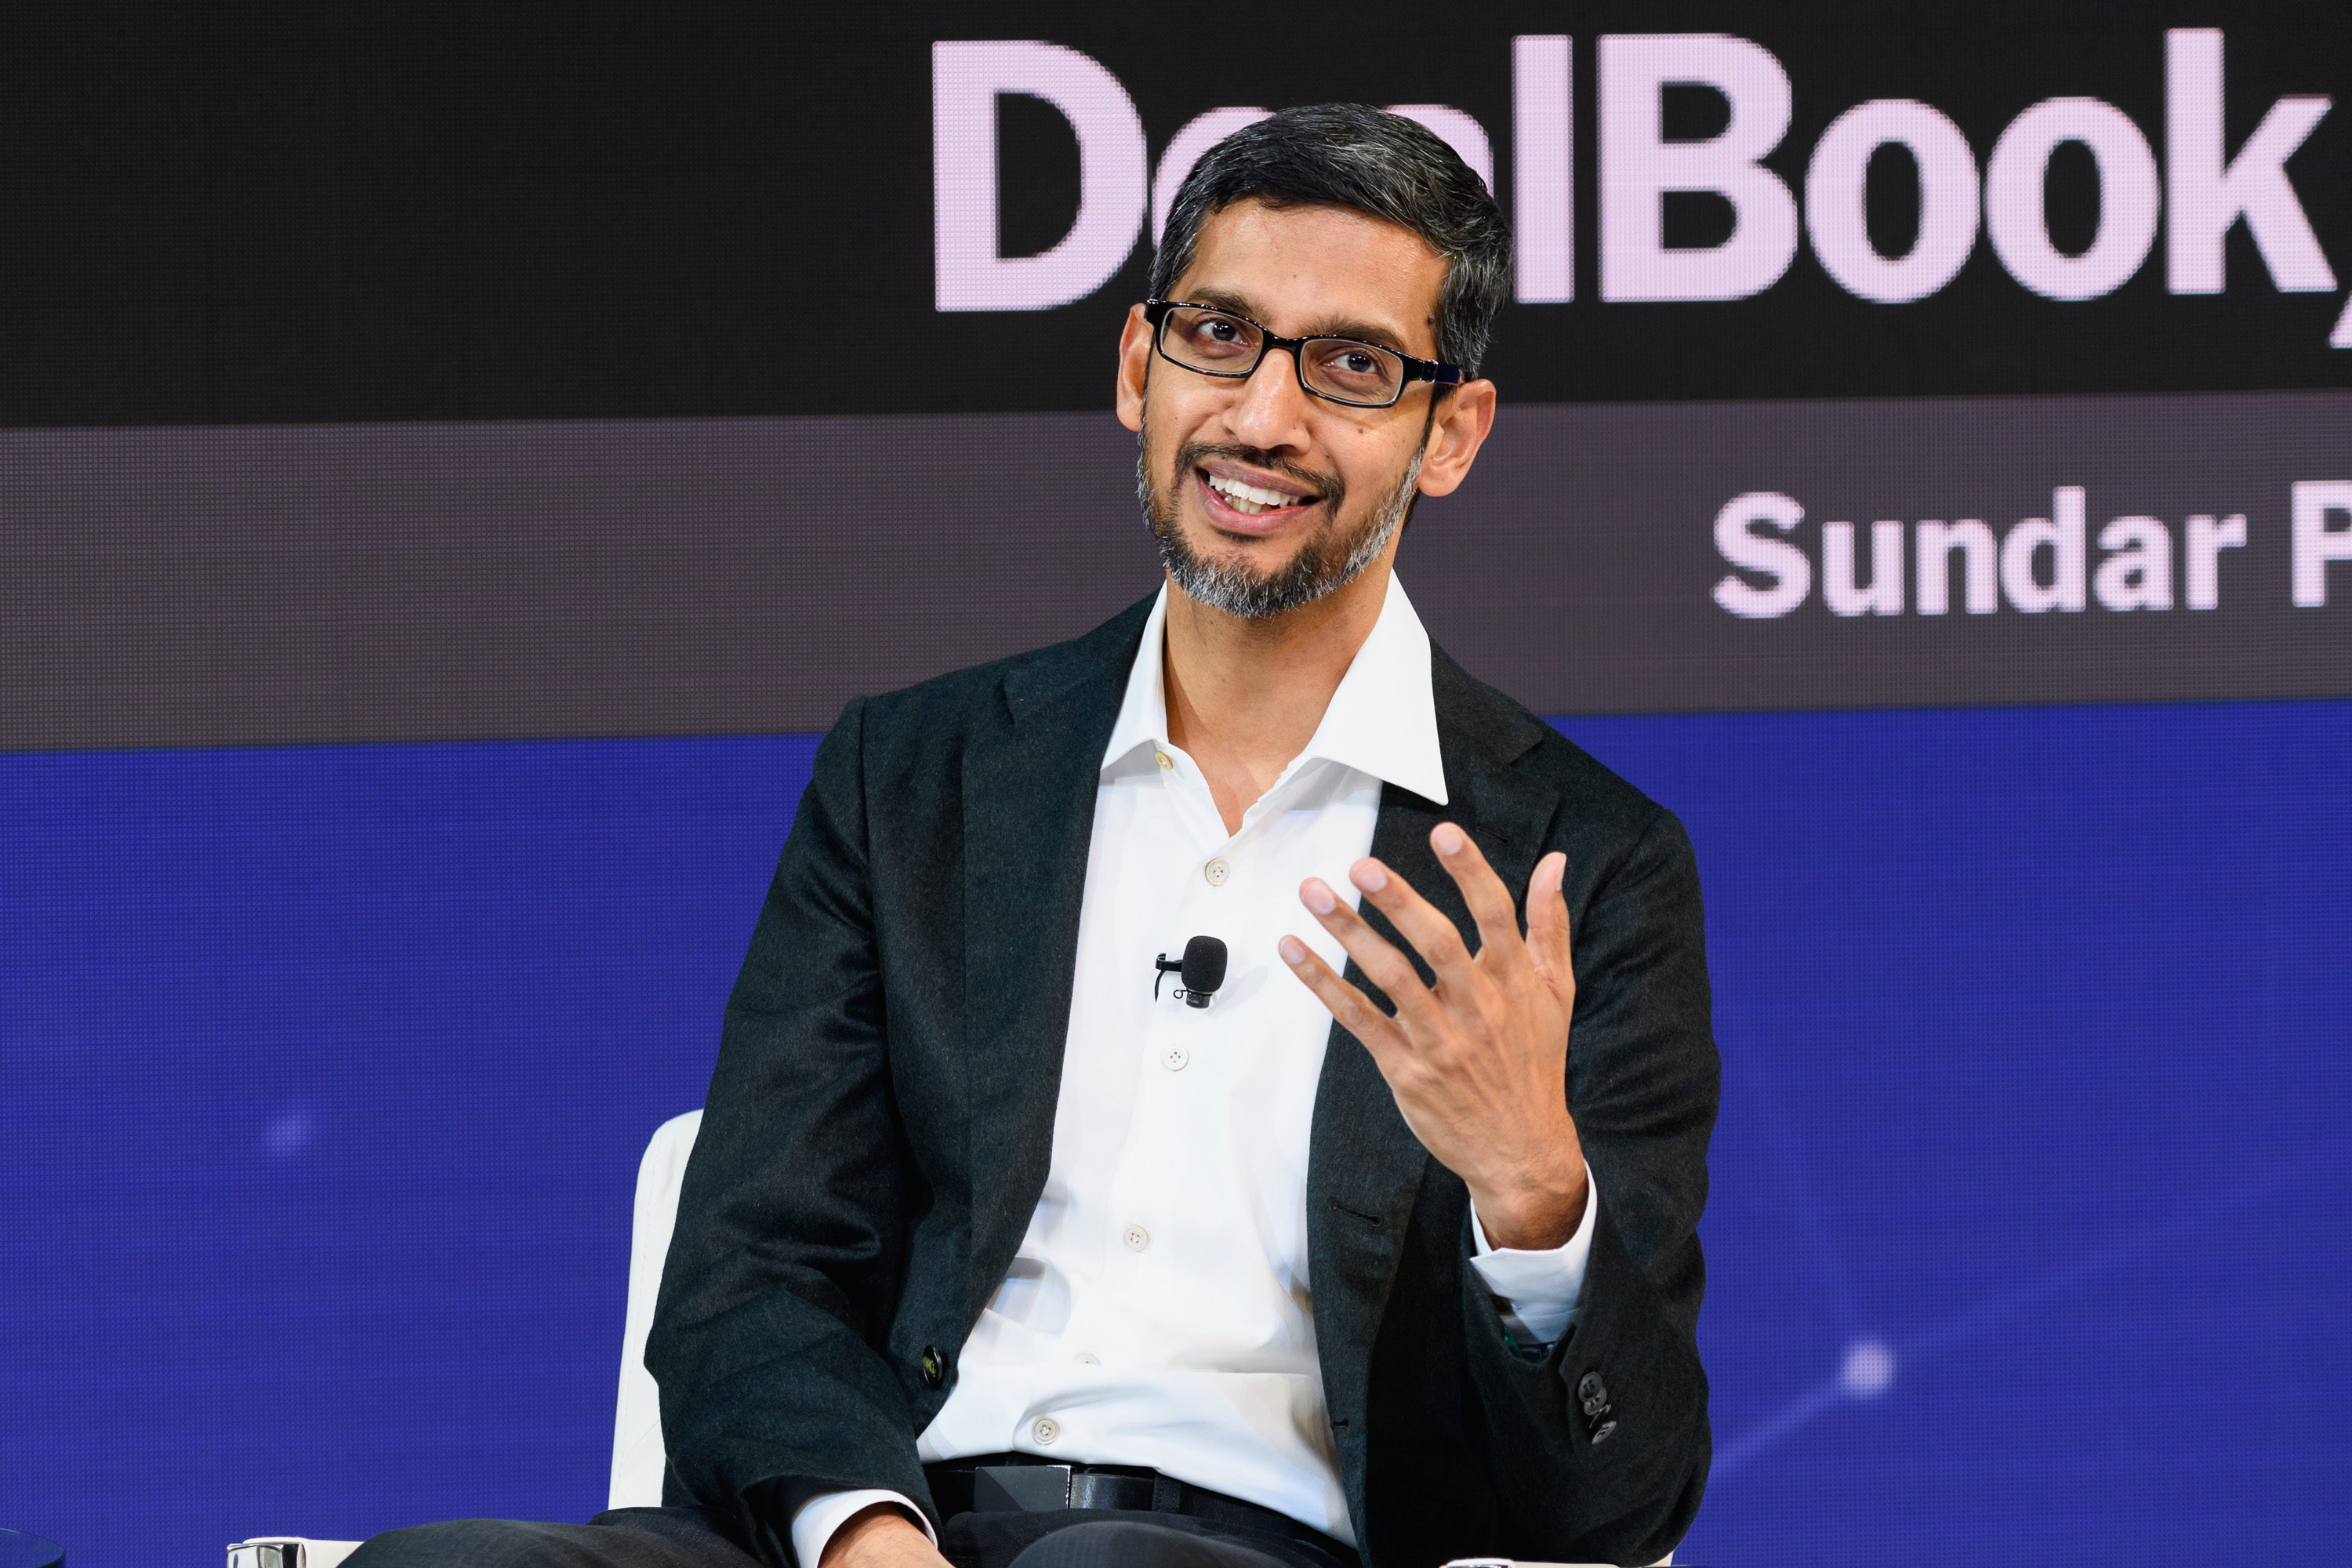 NEW YORK, NY - NOVEMBER 01: Sundar Pichai, C.E.O., Google Inc. speaks onstage during the 2018 New York Times Dealbook on November 1, 2018 in New York City. (Photo by Michael Cohen/Getty Images for The New York Times)